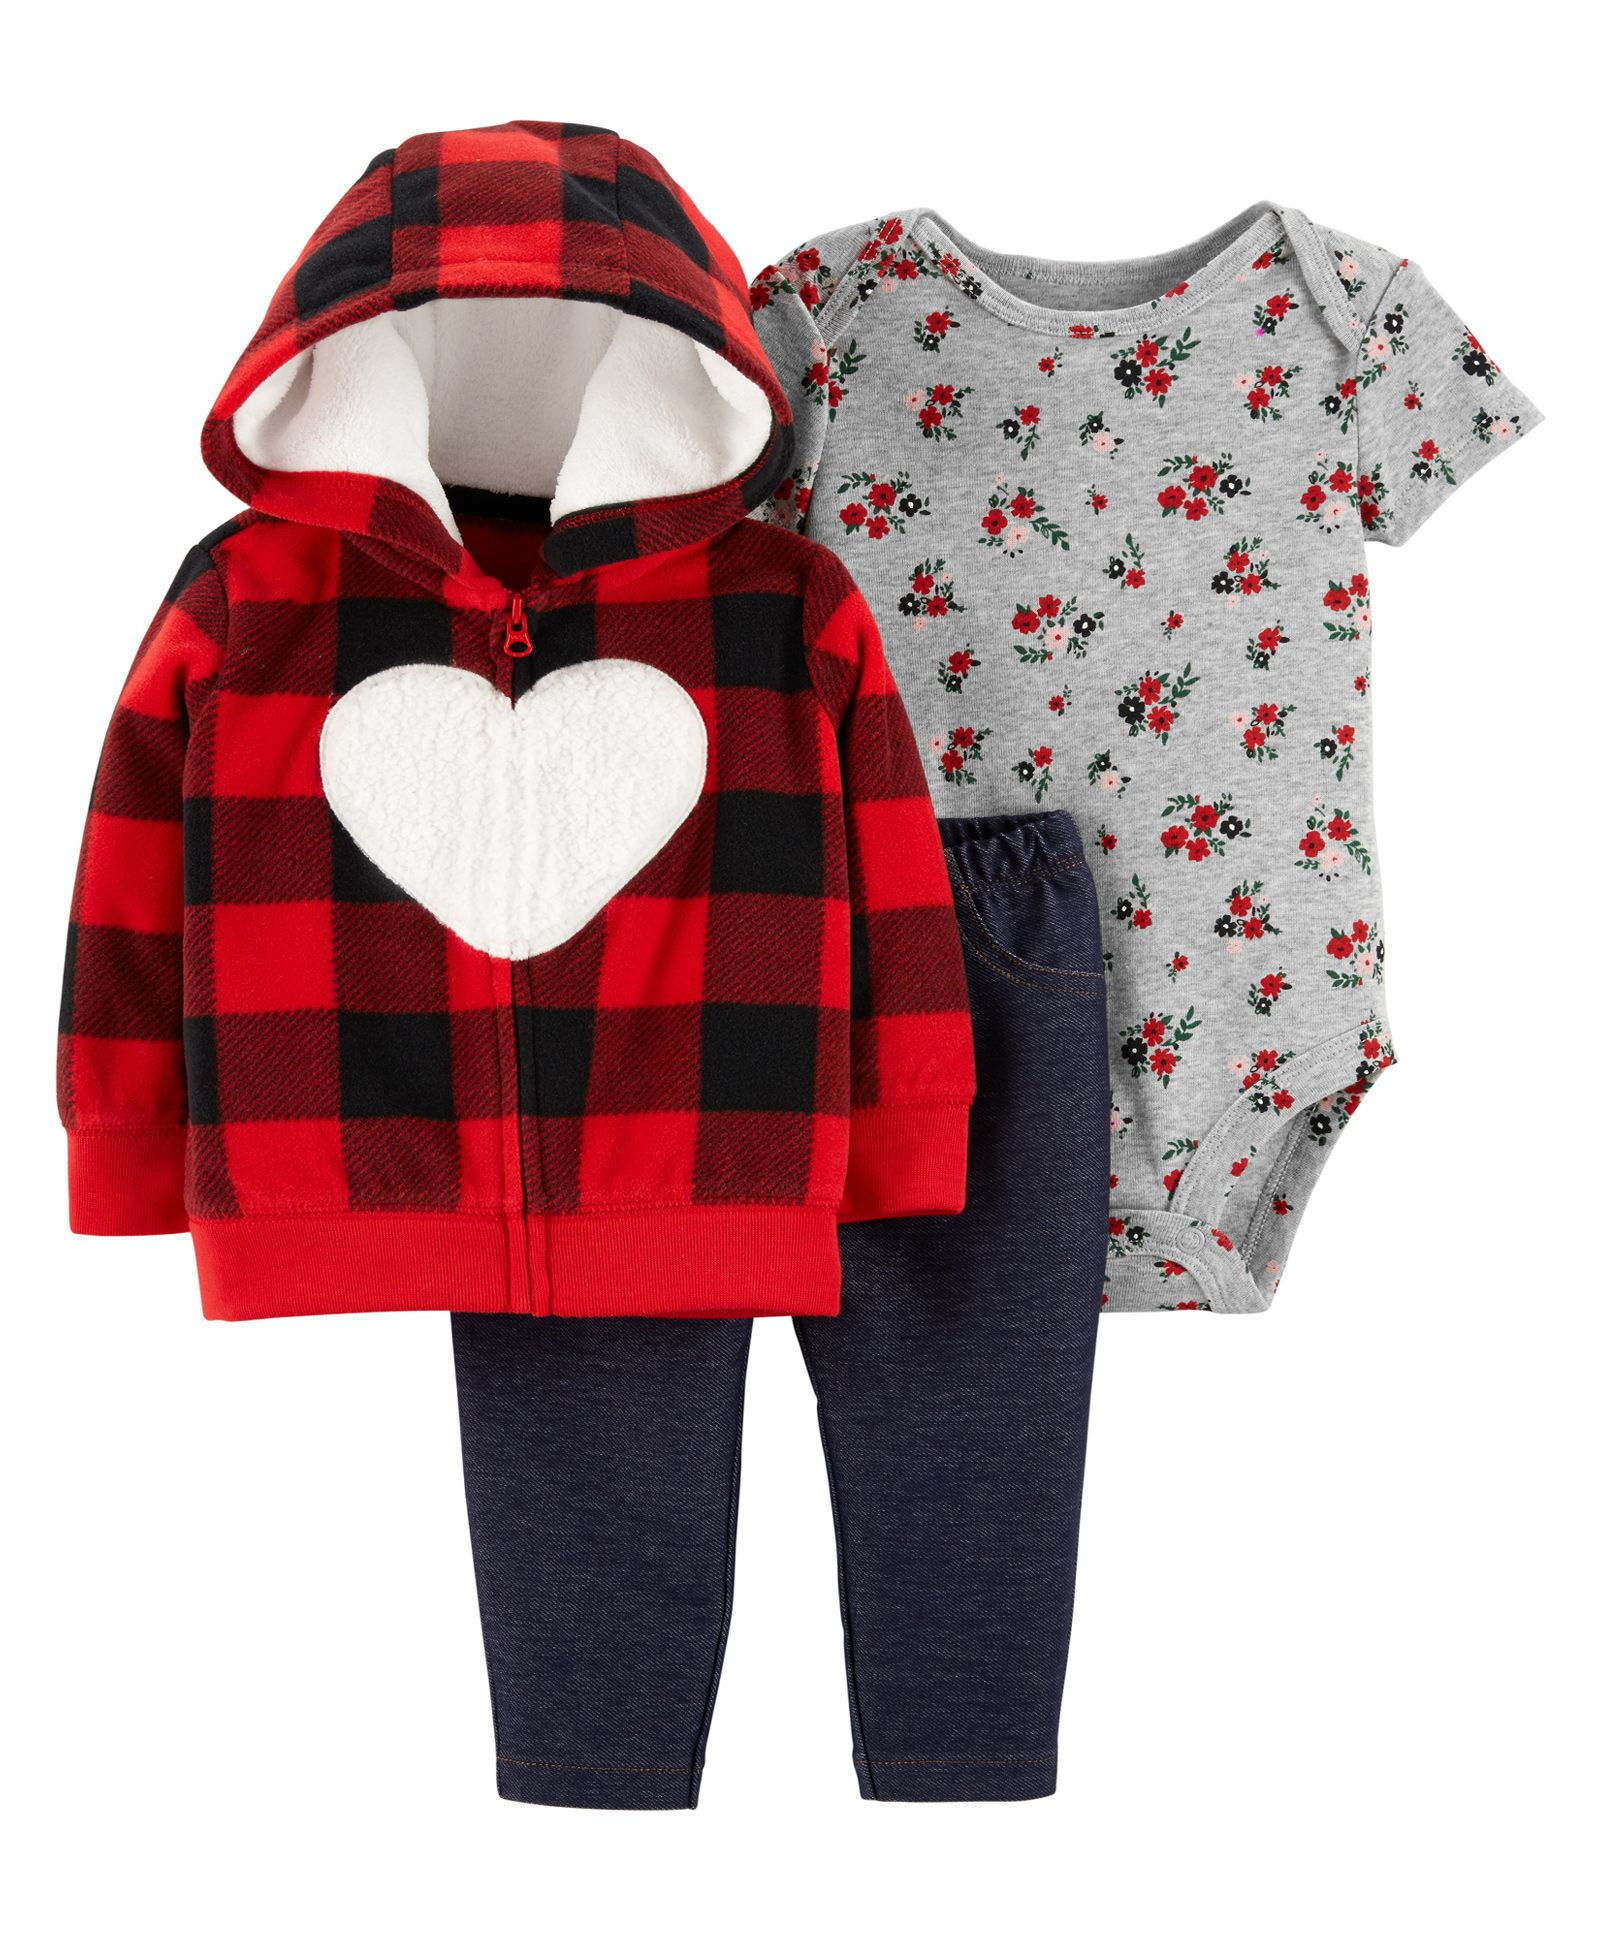 2a816ae5b4c1 Buy Carters 3Piece Little Jacket Set Red Grey for Girls (0-3 Months ...